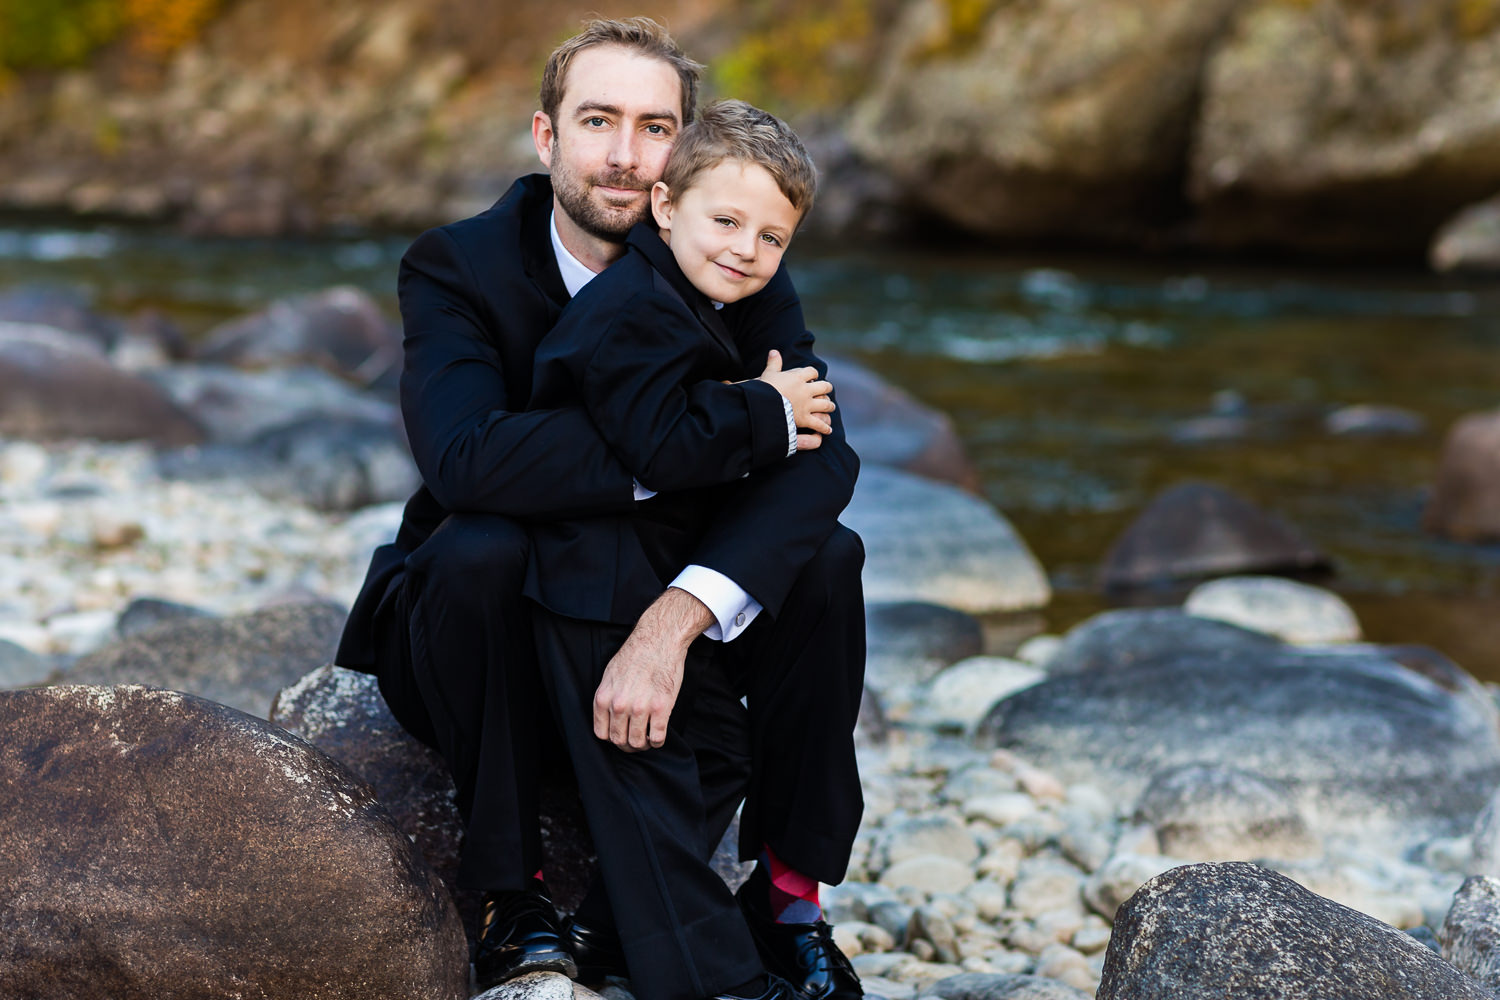 Joe and his son Chase enjoyed some time together before the ceremony. Chase also served as the ring bearer.